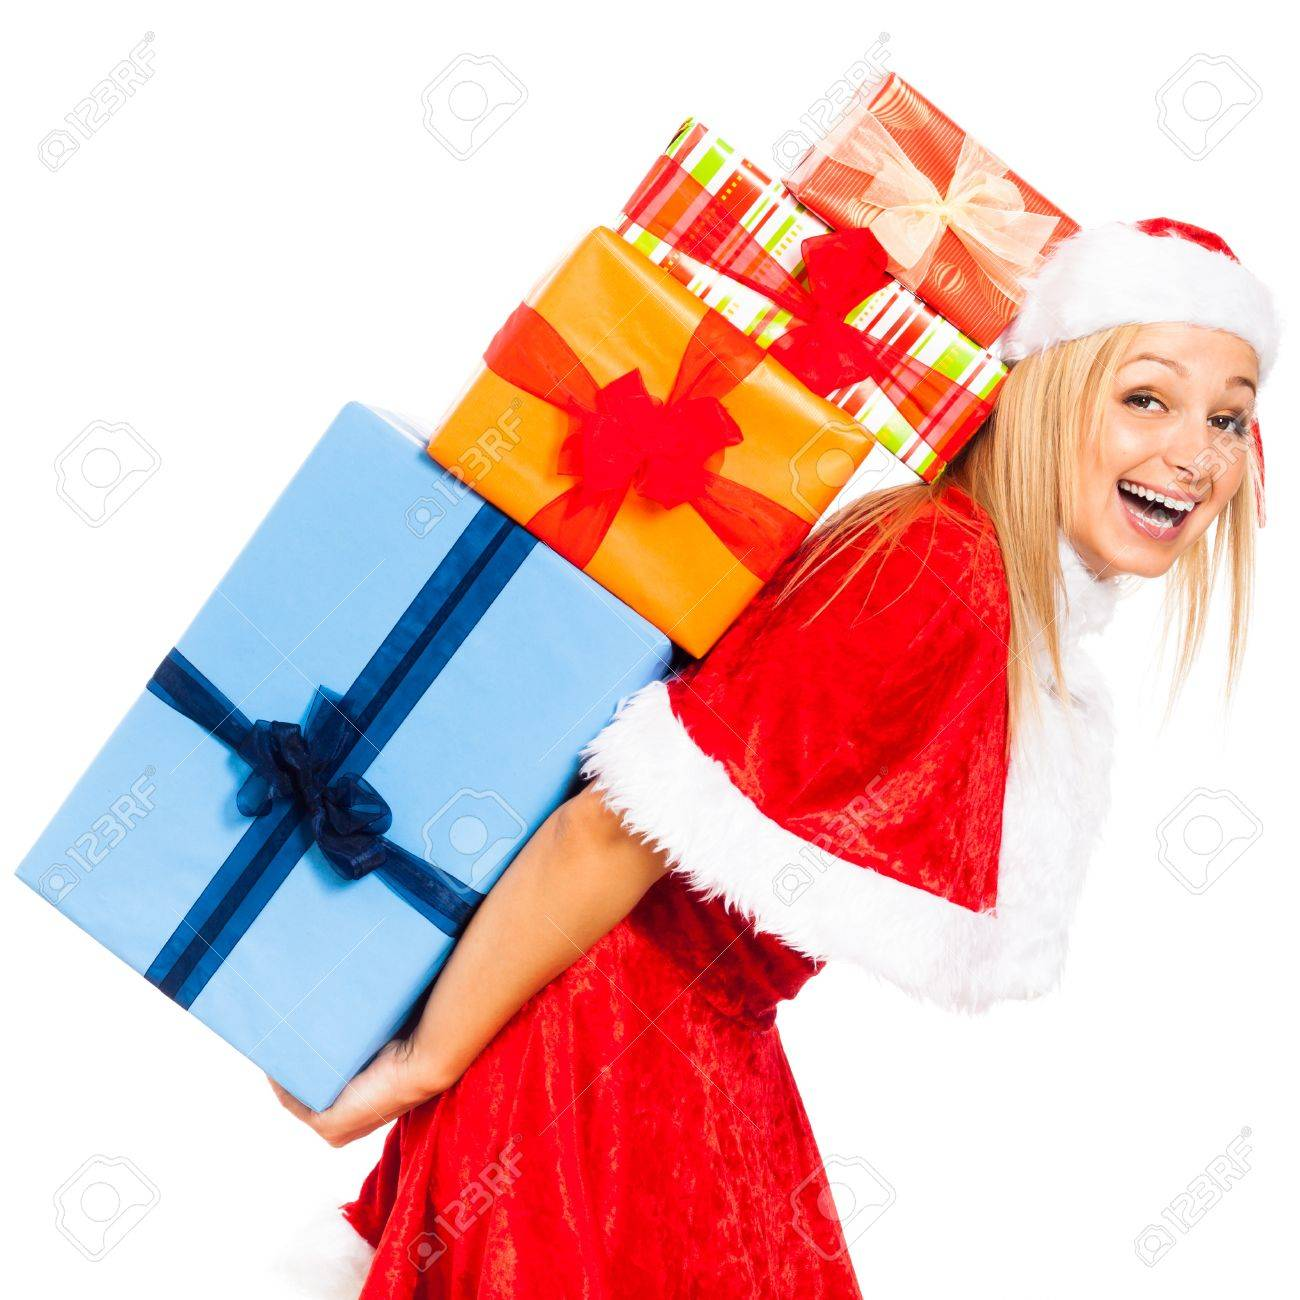 Young beautiful blond laughing woman holding stack of colorful gift boxes wearing Christmas Santa costume, isolated on white background. Stock Photo - 16008536